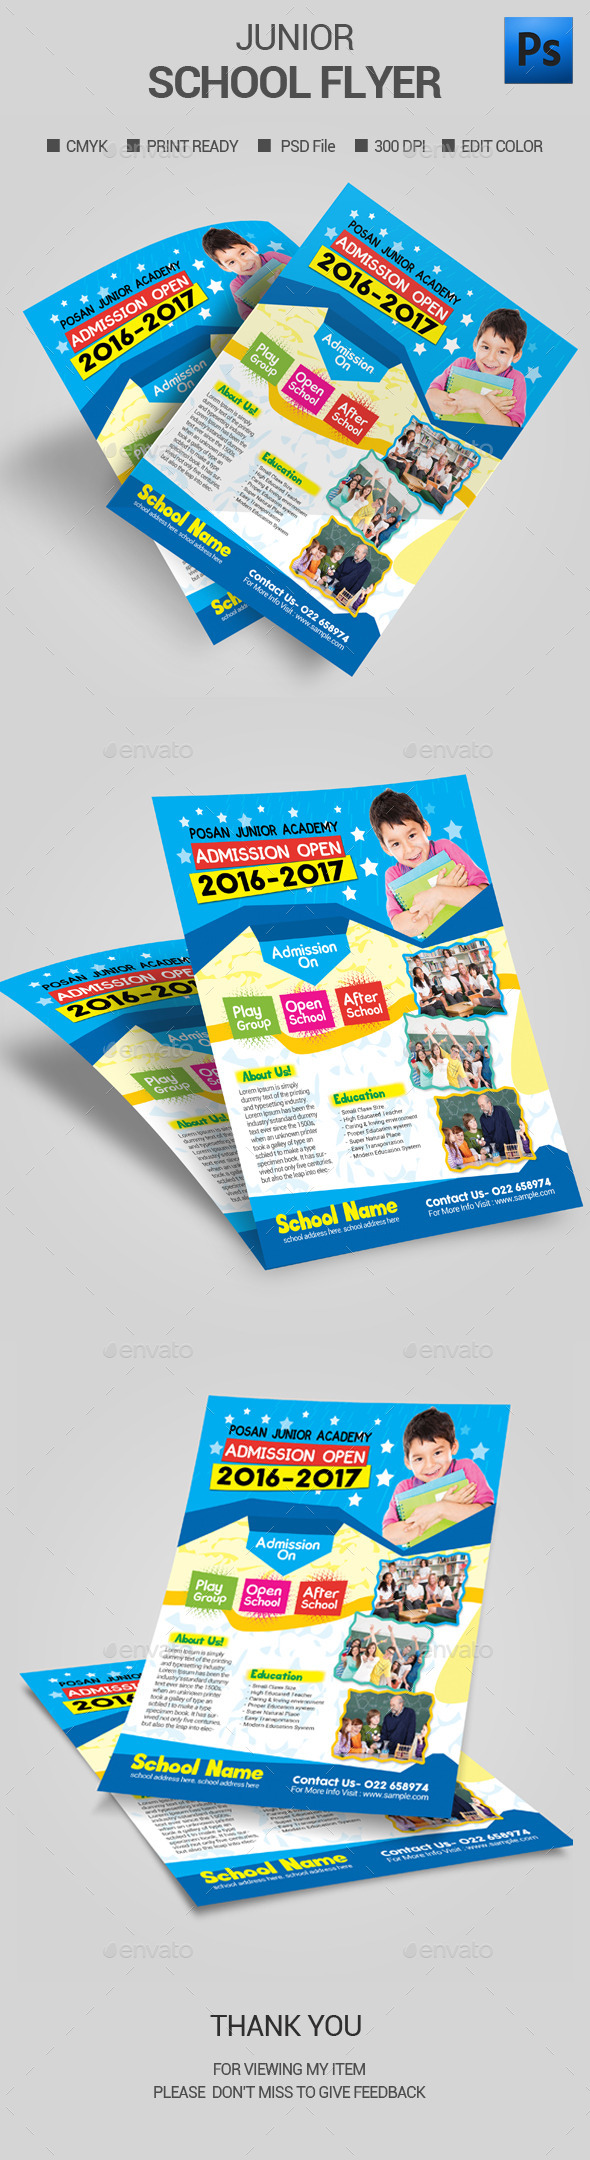 Junior School Admission Flyer - Flyers Print Templates